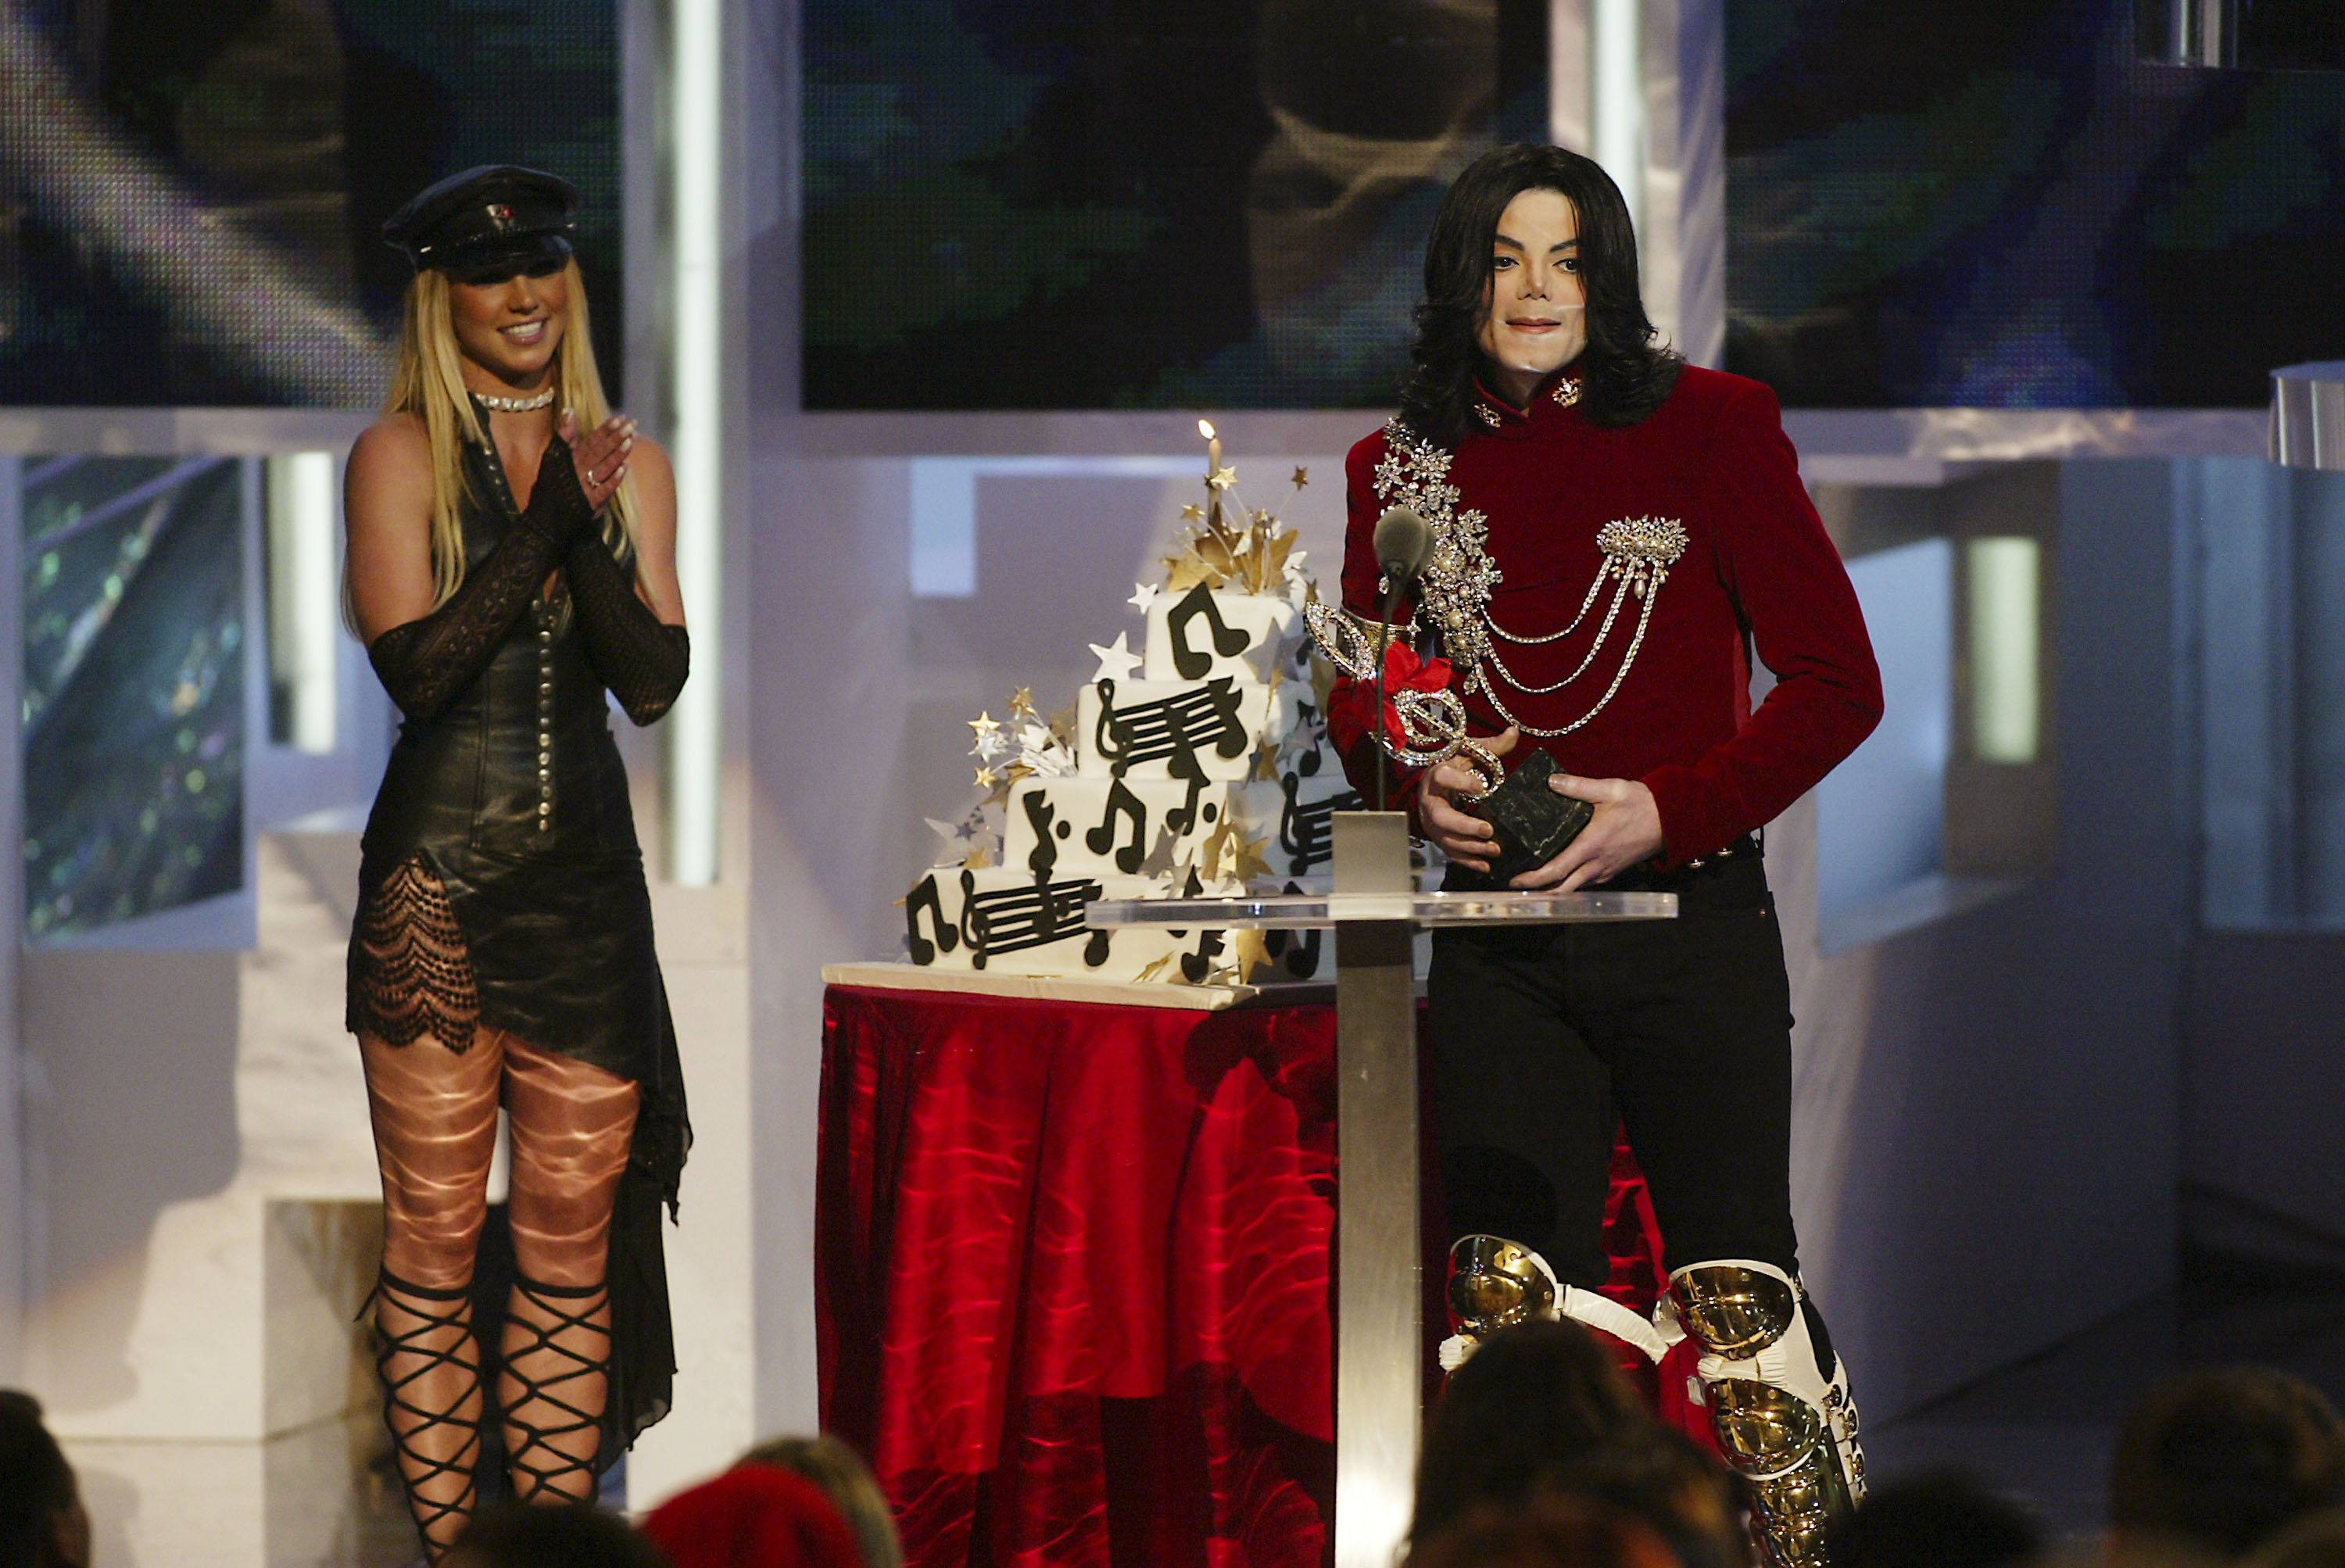 Britney Spears and Michael Jackson on stage at the 2002 MTV Video Music Awards at Radio City Music Hall in New York City, August 29, 2002. Photo by Scott Gries/ImageDirect.